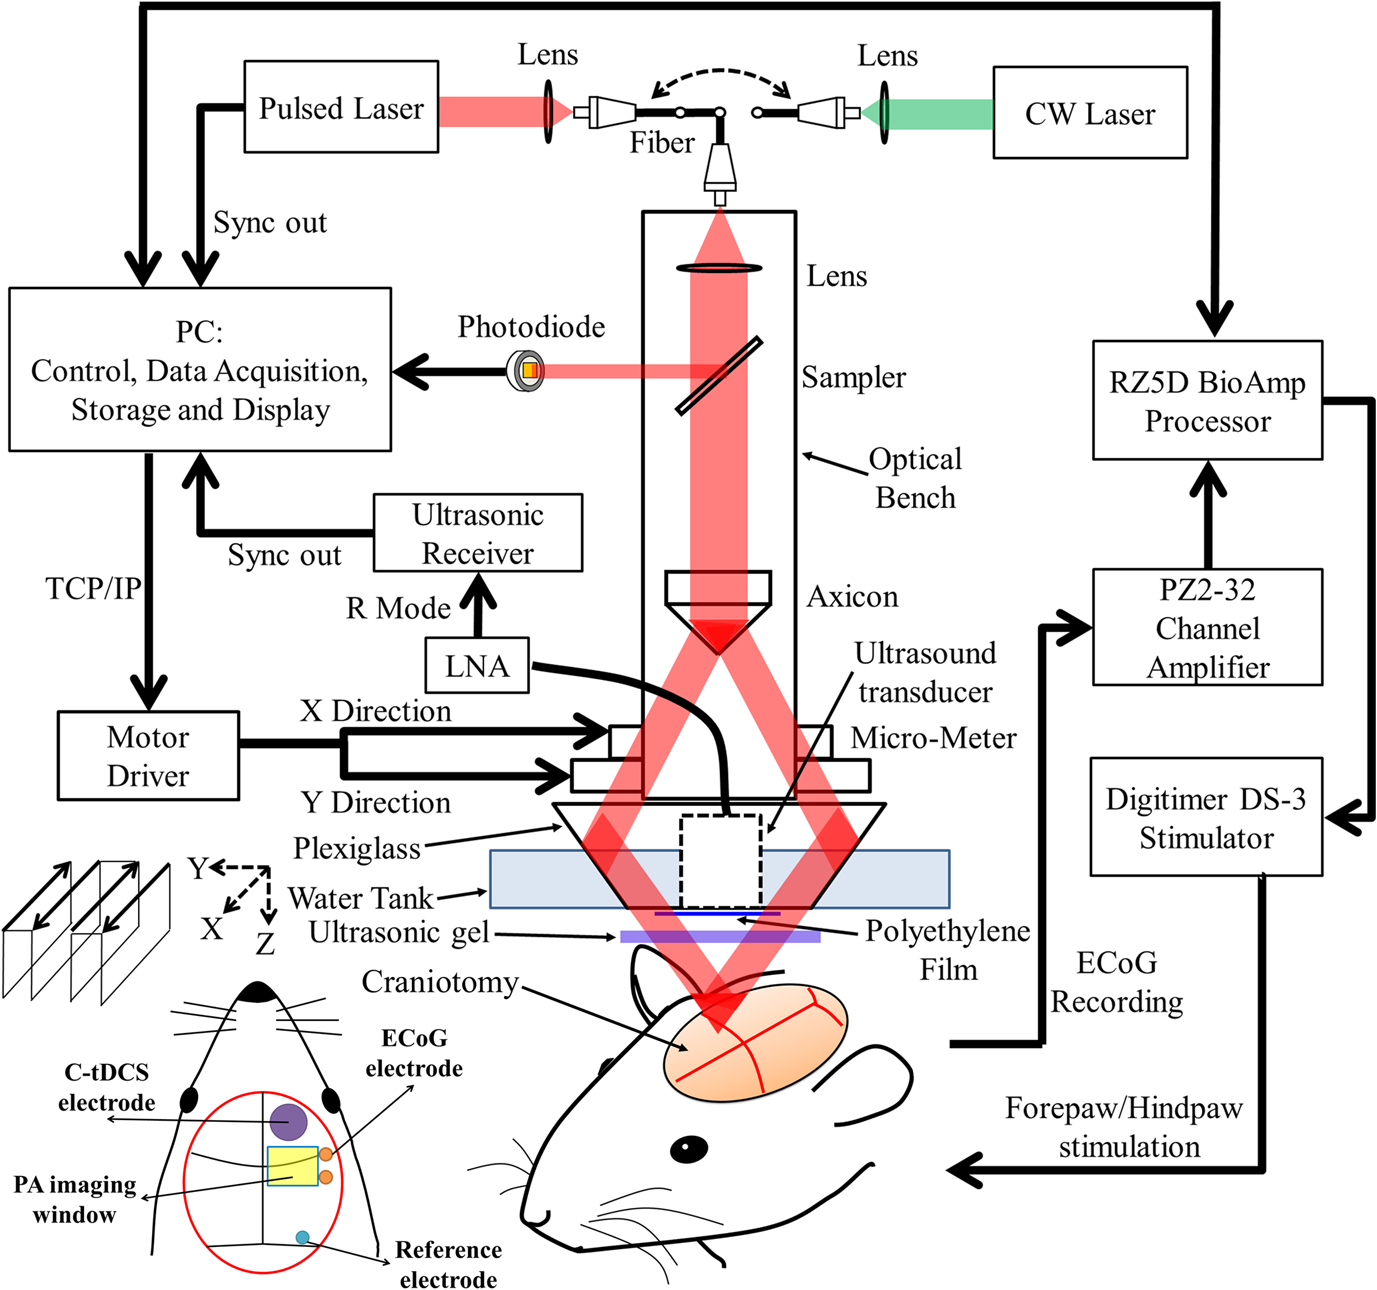 Integrated Treatment Modality Of Cathodal Transcranial Direct Cascaded Form C Dry Contact Wiring Schematic For Tdcs Intervention The Electrode Was Placed On Skull While Anodal Attached To Venter